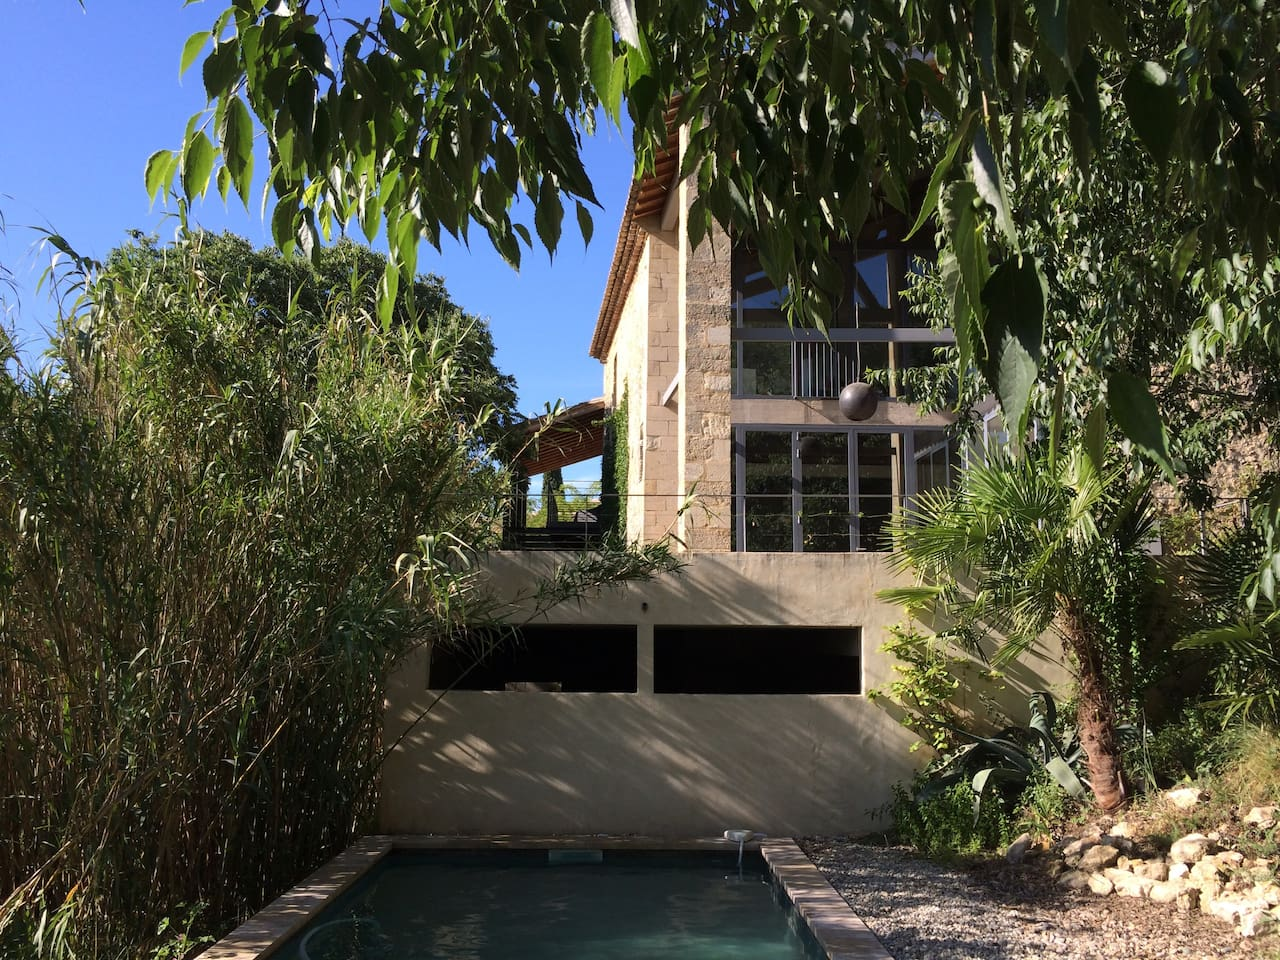 the house and the swimming pool surrounded by bamboos and trees